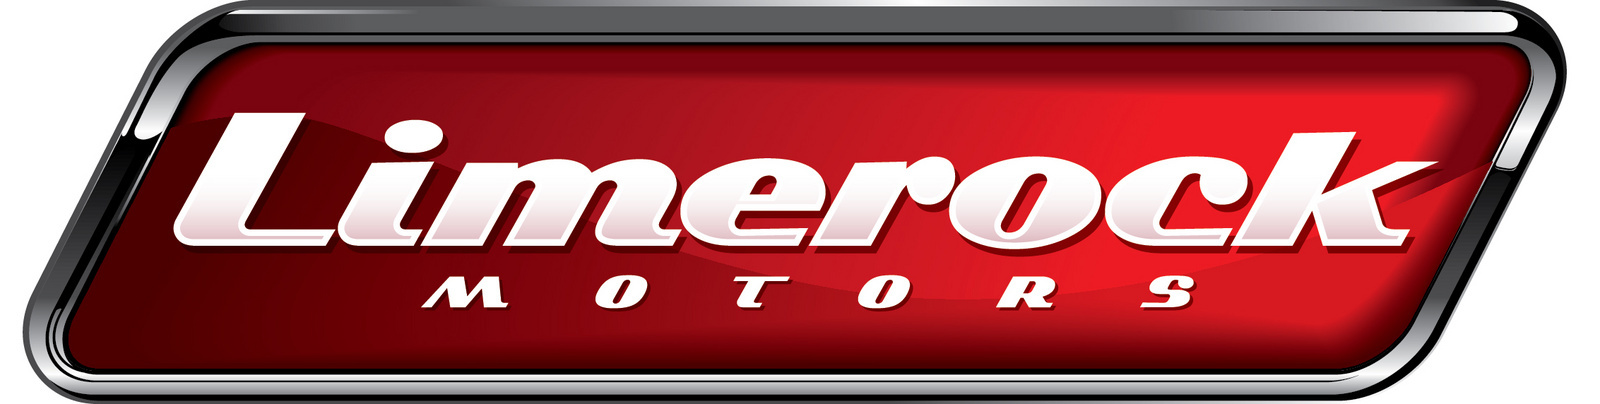 Limerock Motors Attleboro Ma Read Consumer Reviews